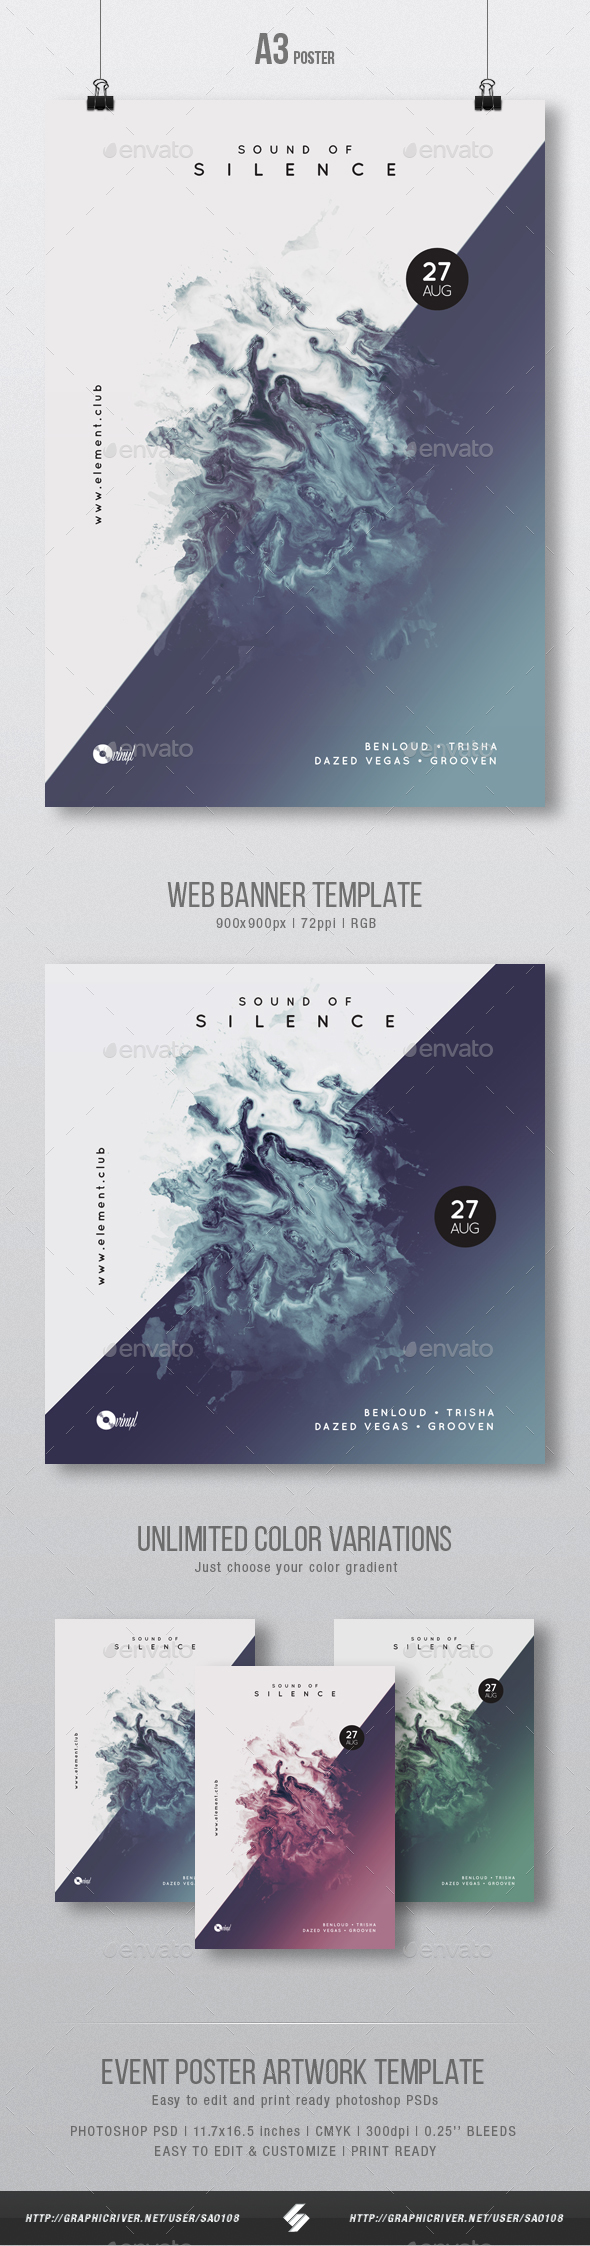 Sound Of Silence - Minimal Party Flyer / Poster Artwork Template A3 - Clubs & Parties Events